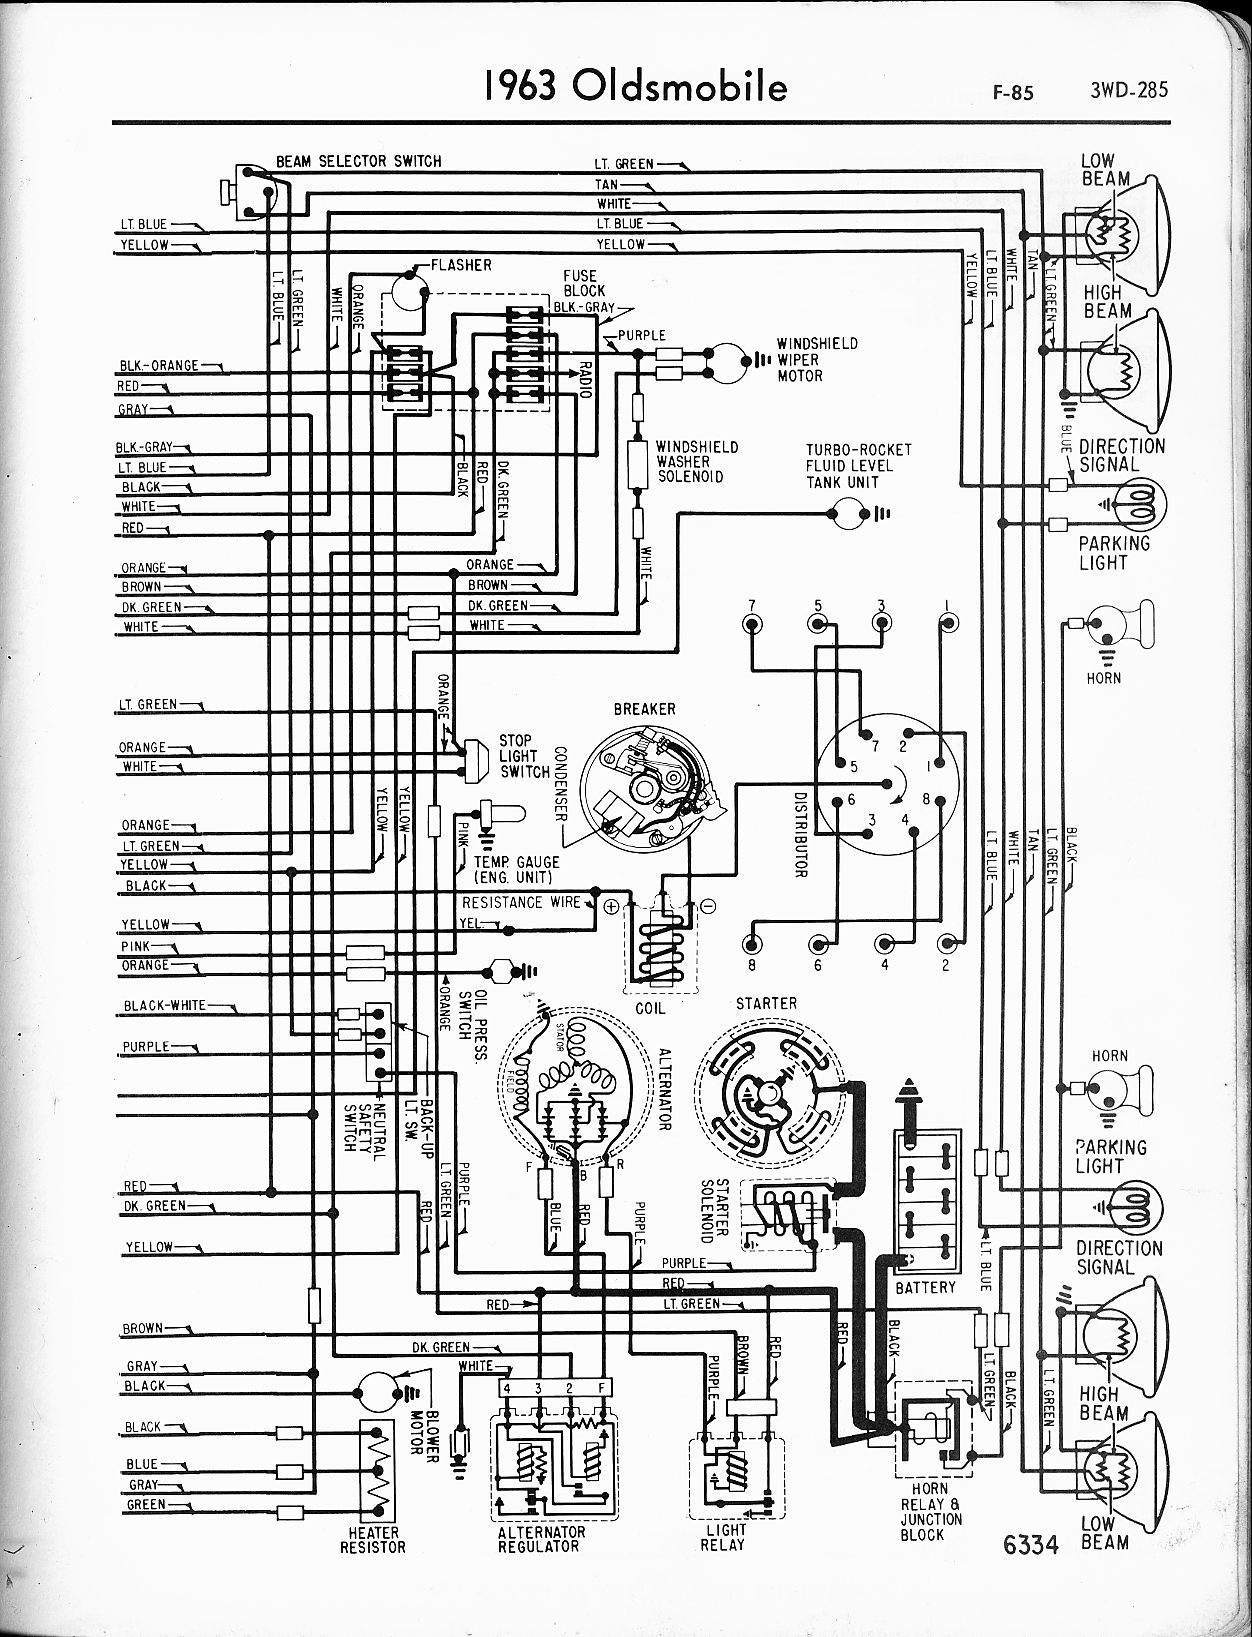 oldsmobile wiring diagrams the old car manual project rh  oldcarmanualproject com 1993 Oldsmobile Wiring Diagrams 1969